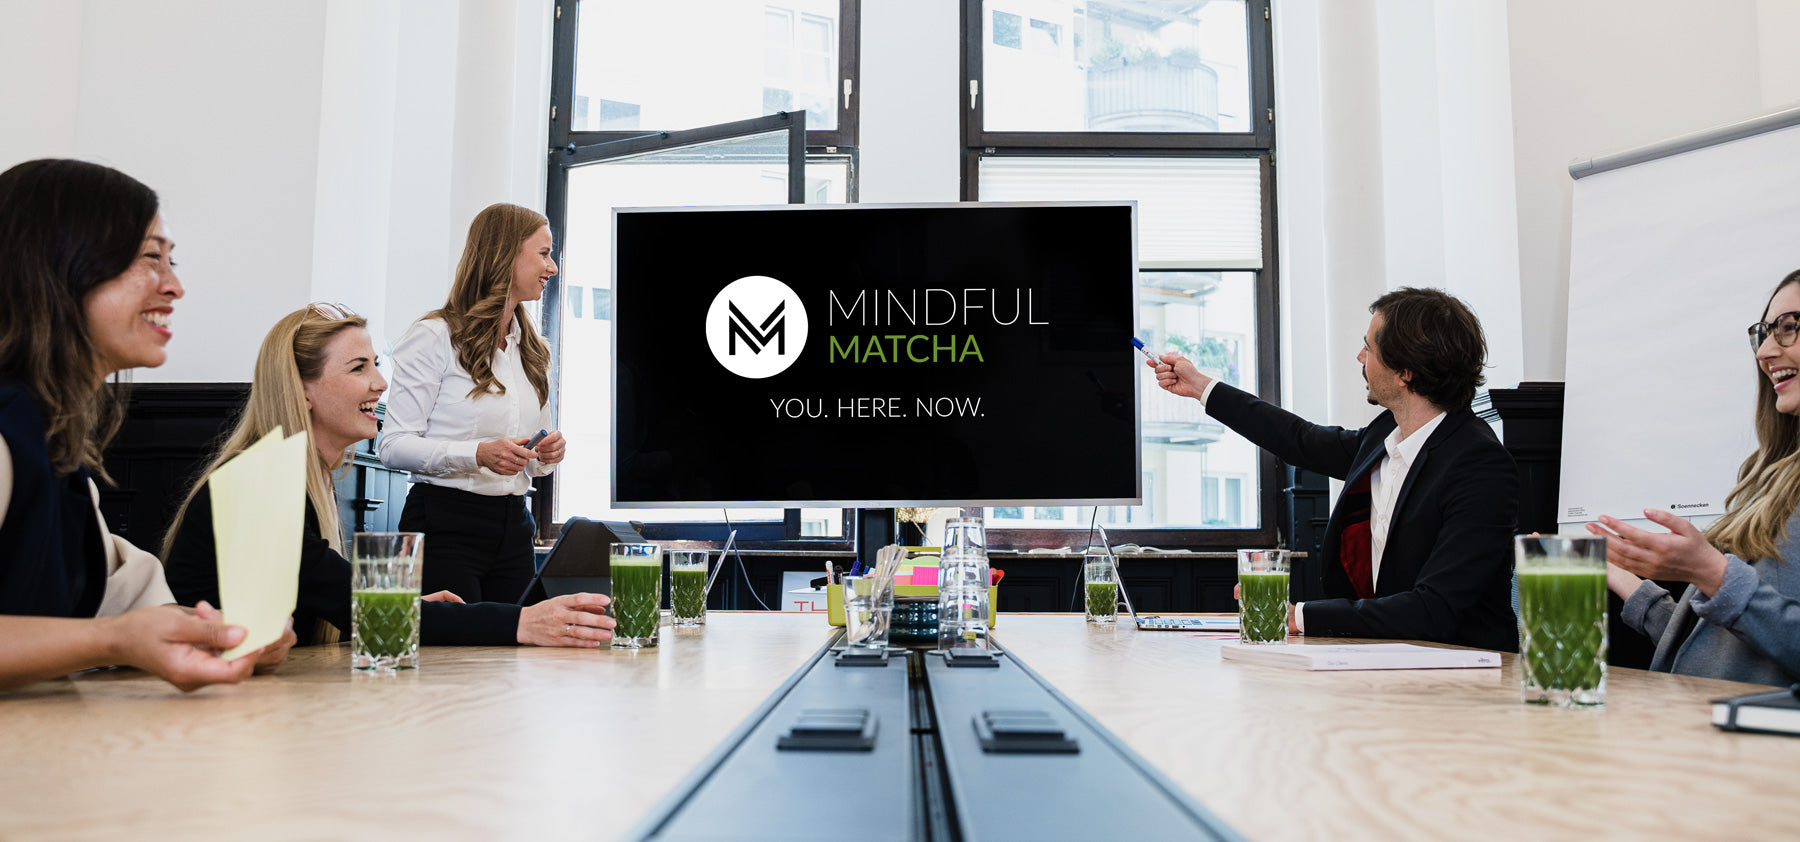 Virtuelles Teamevent mit Mindful Matcha